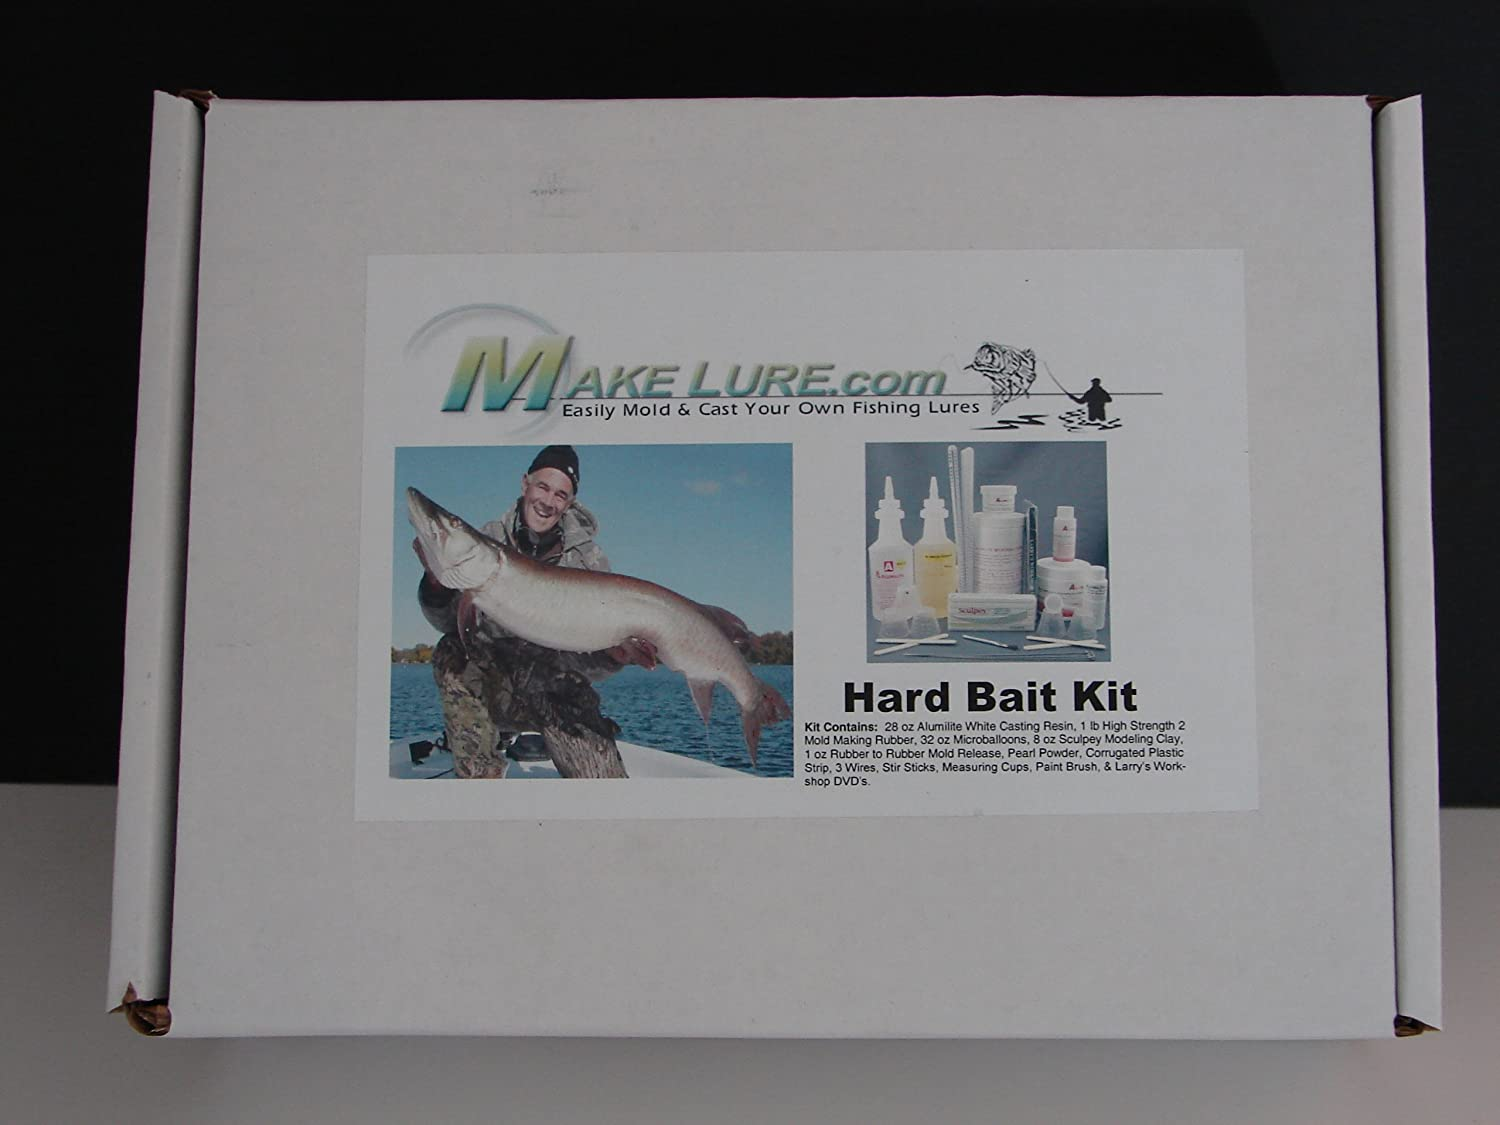 Lure making kits make your own fishing lures - Amazon Com Alumilite Make Fishing Lures Hard Bait Kit Molding And Casting Materials Sports Outdoors